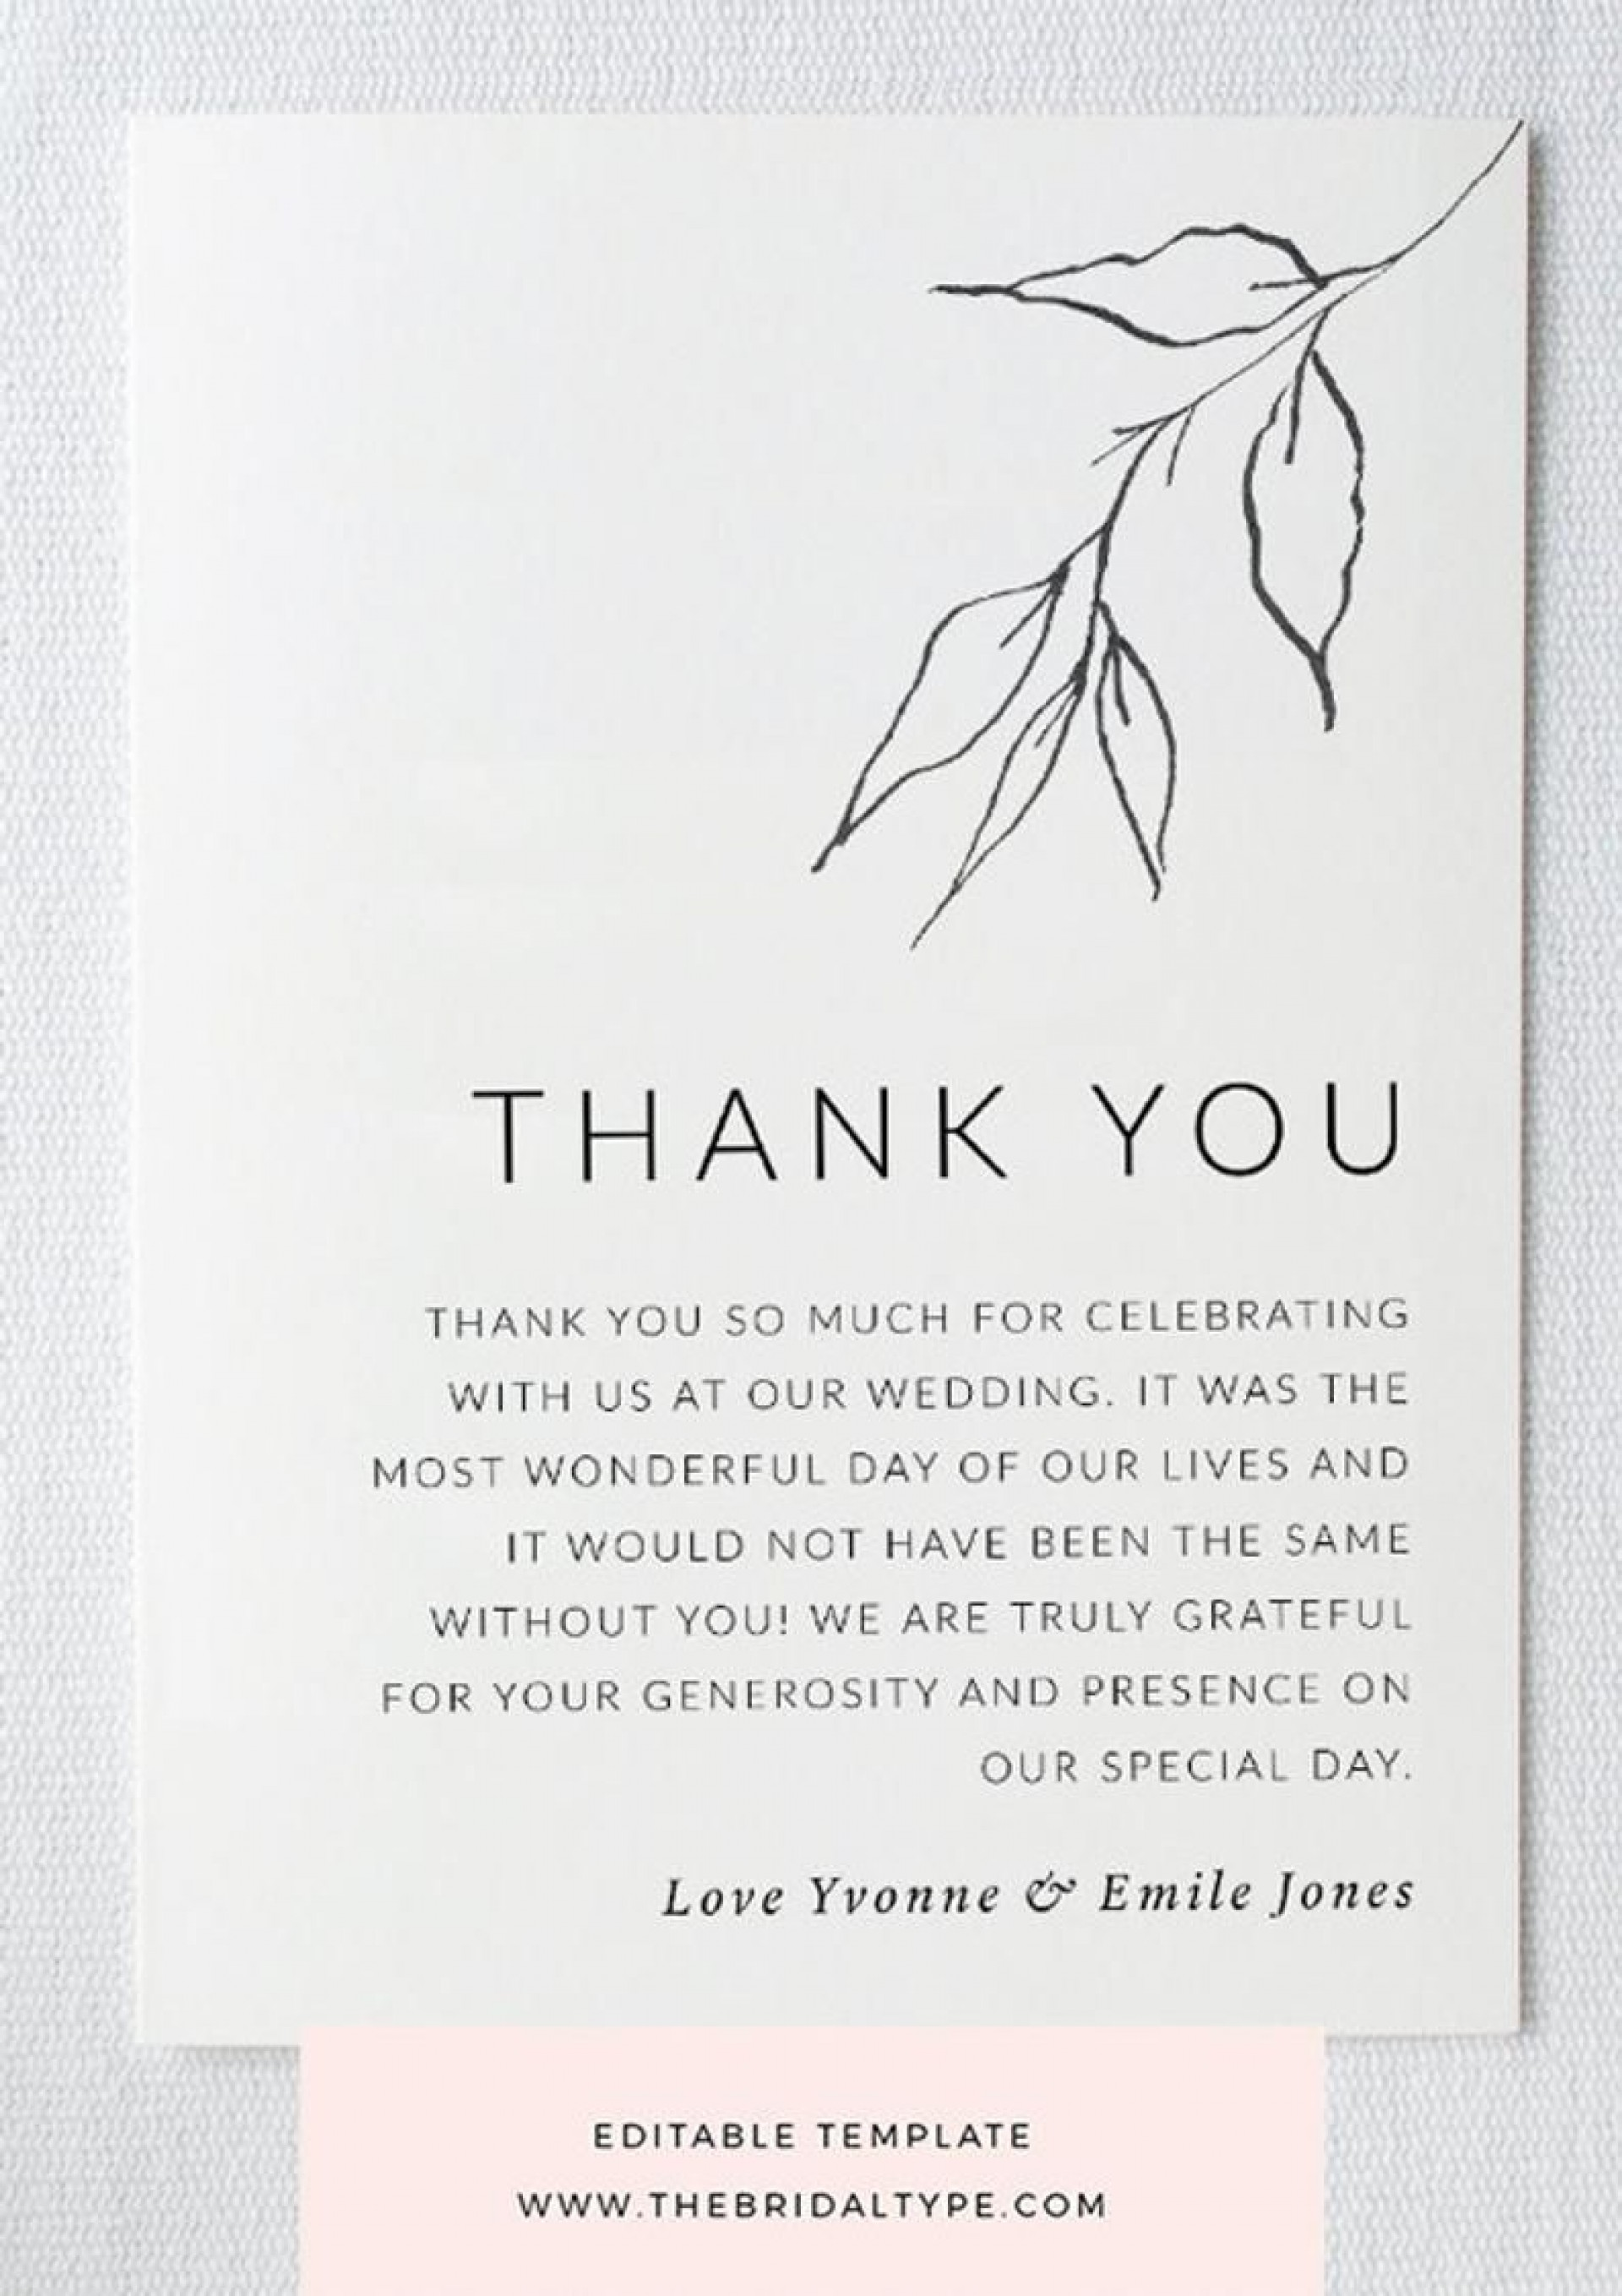 003 Frightening Thank You Note Template Wedding High Def  Card Etsy Wording1920